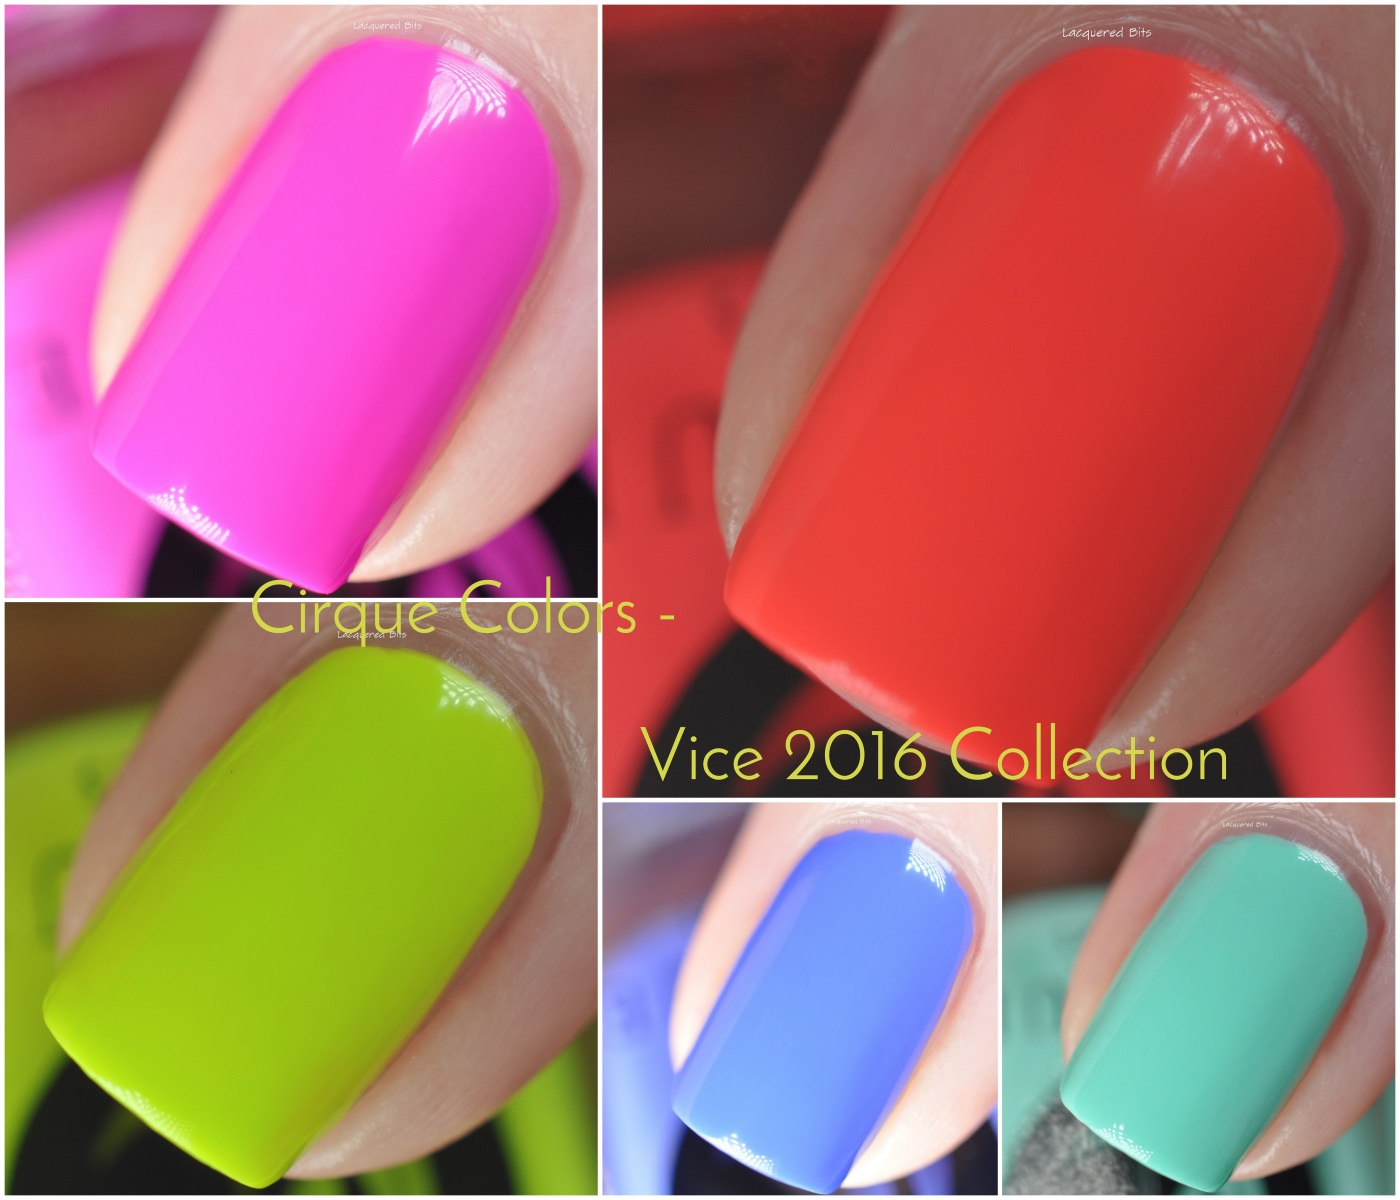 Cirque Colors Vice 2016 Collection Swatches & Review